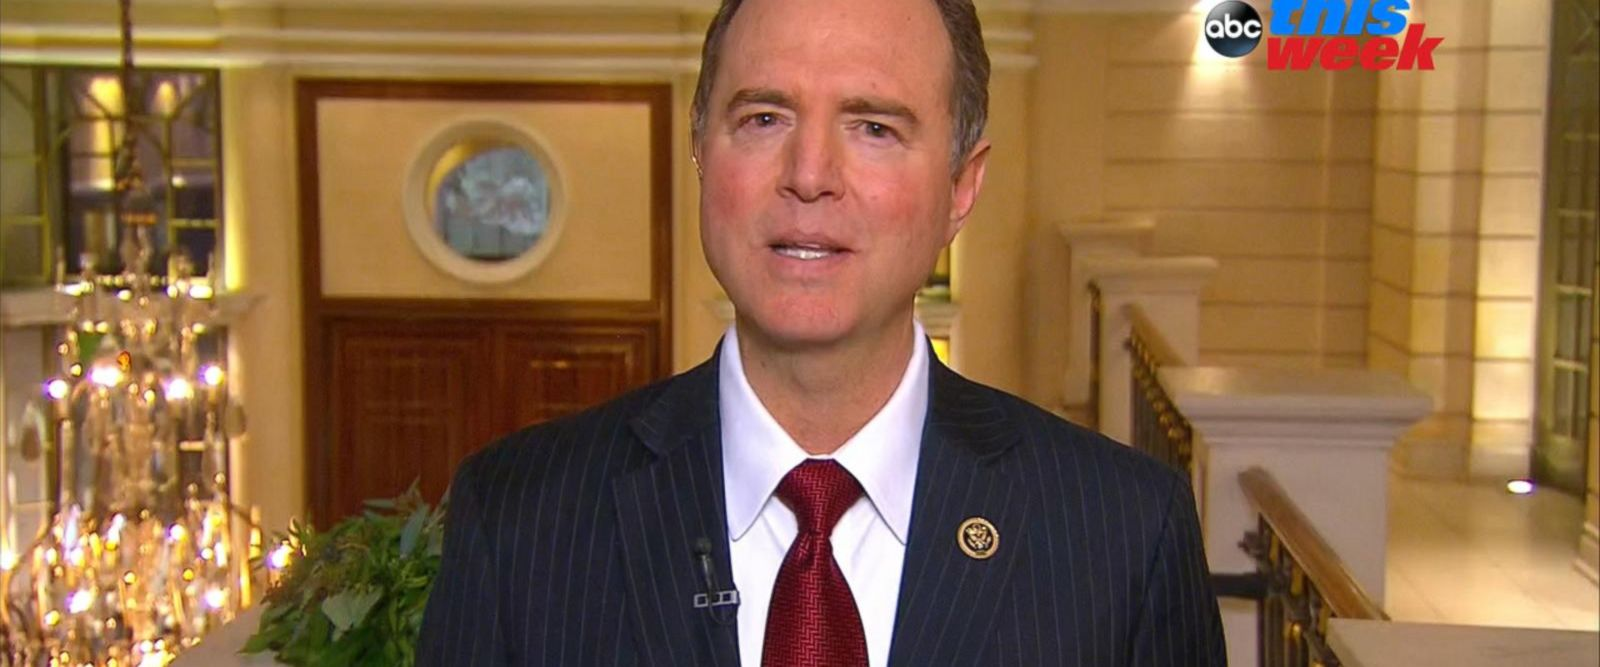 VIDEO: Rep. Adam Schiff says Trump calling media 'the enemy' is something 'you hear tin-pot dictators say'